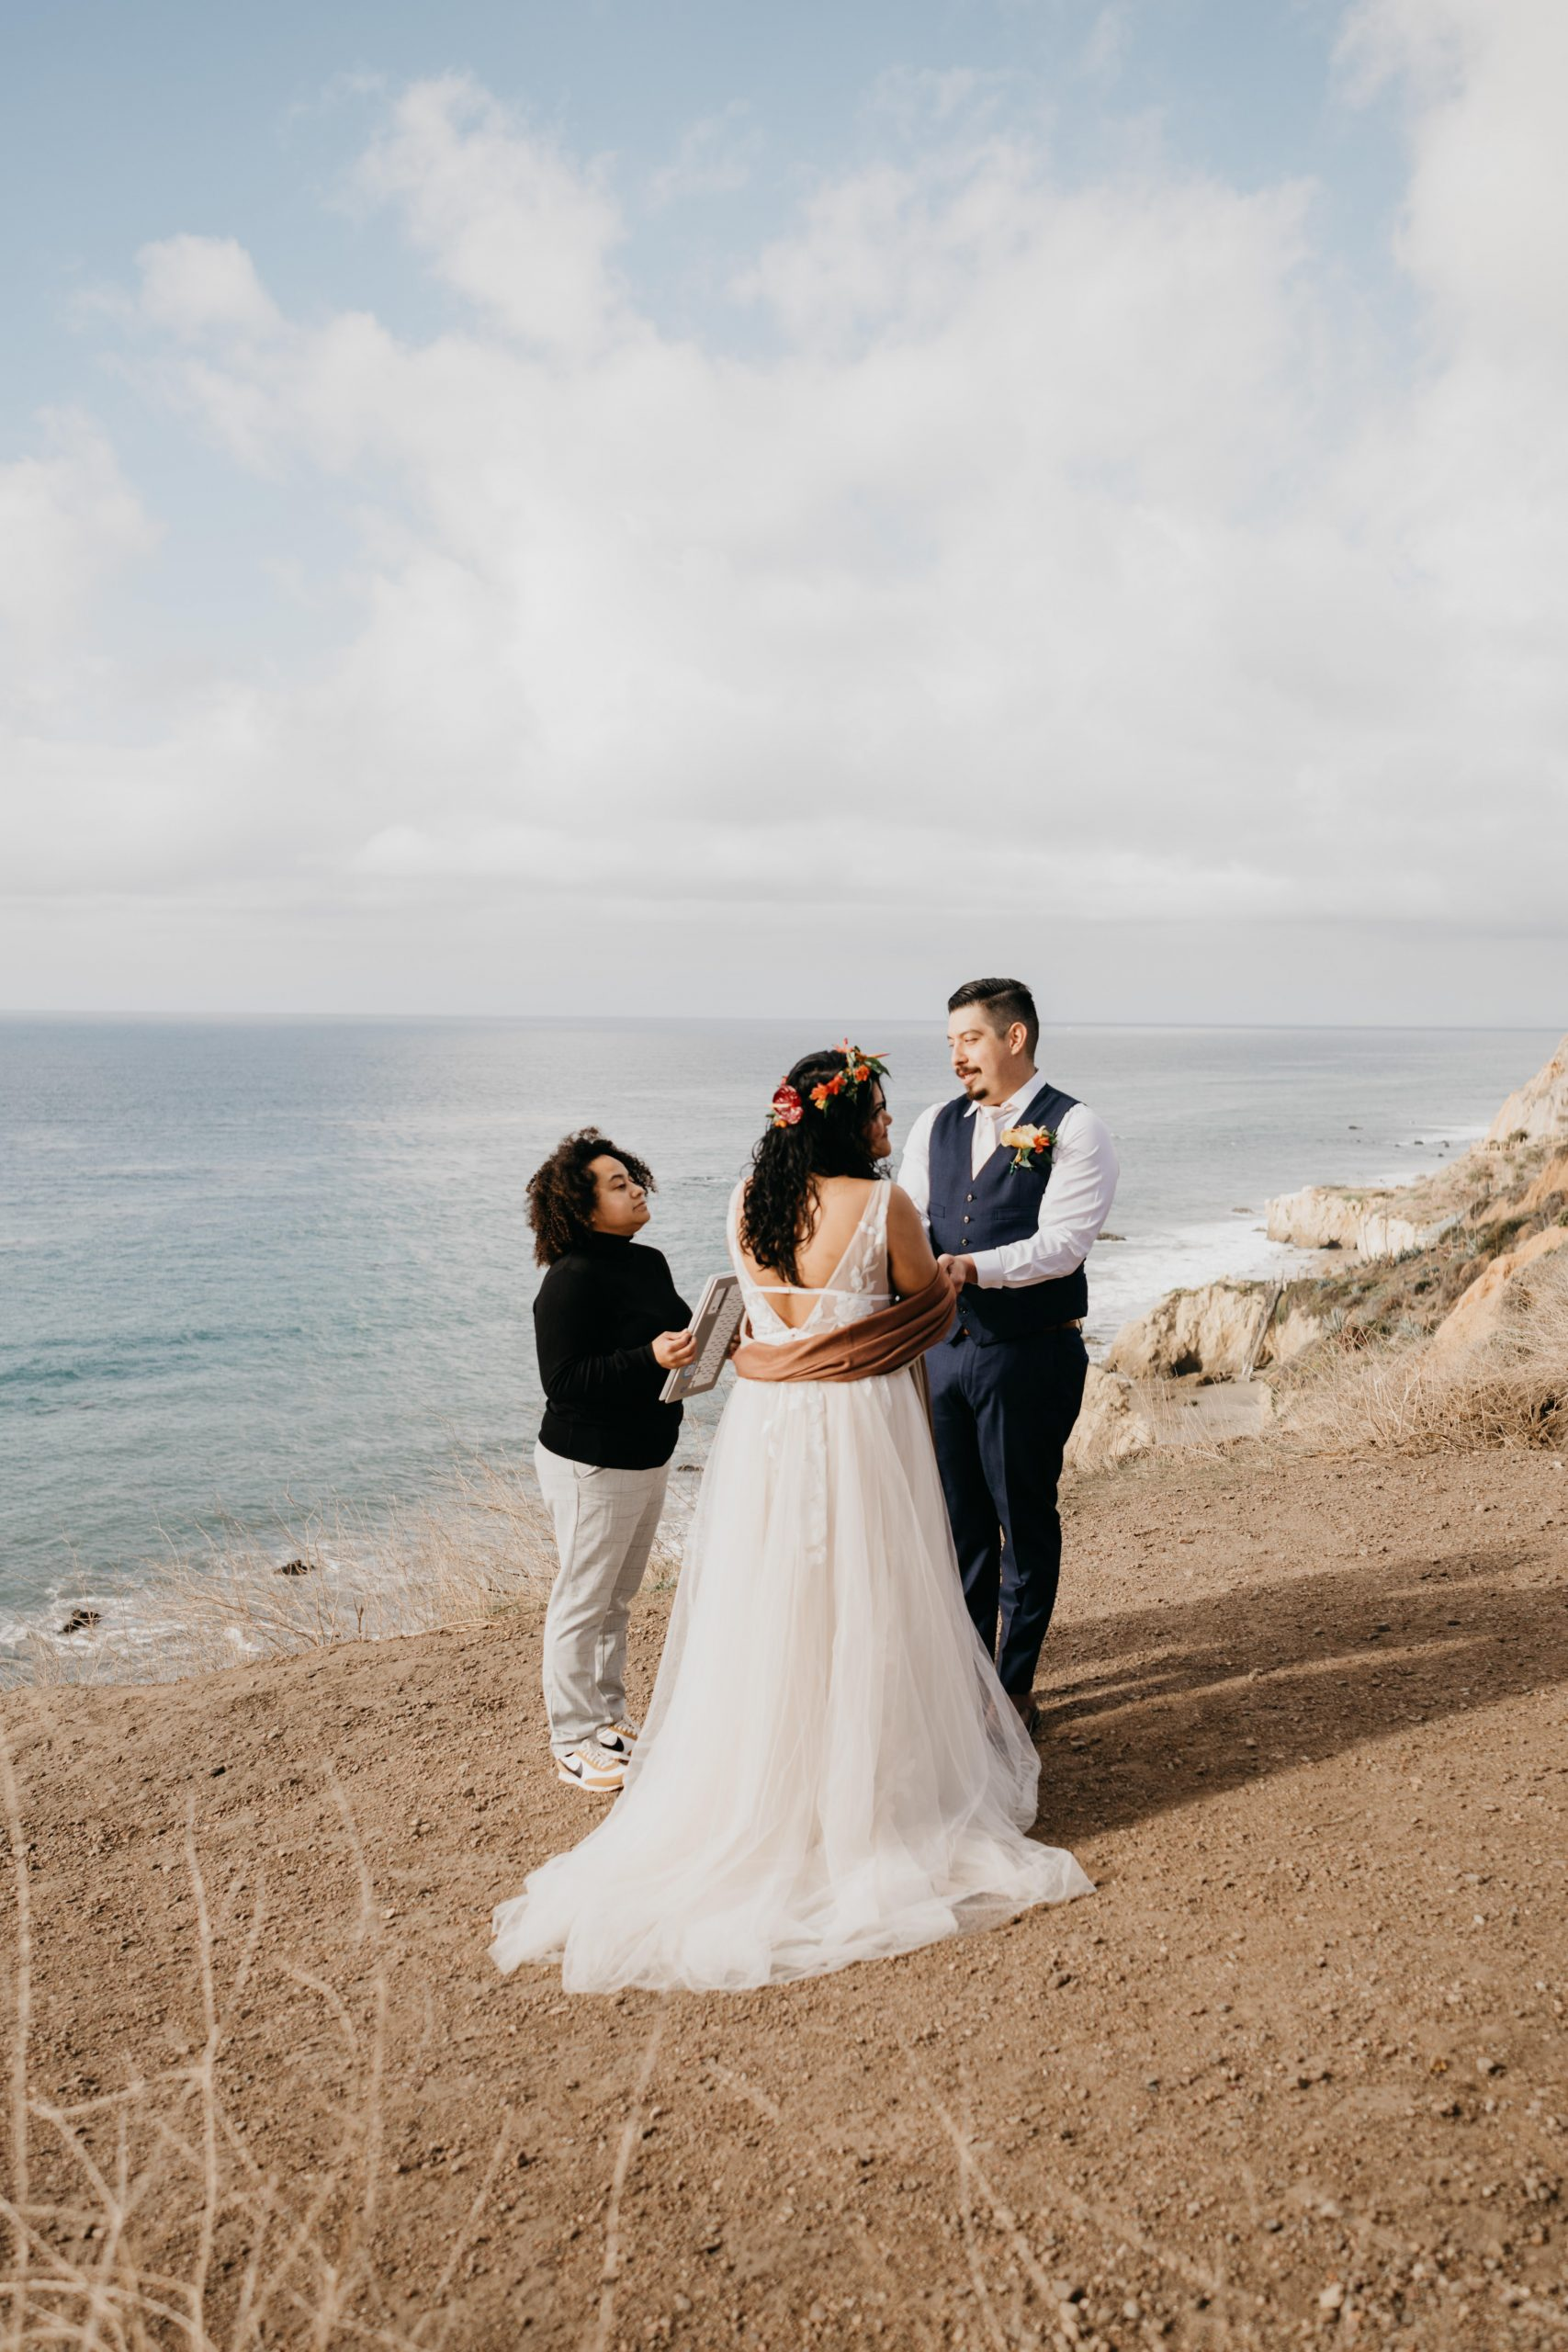 El Matador Beach Elopement, image by Fatima Elreda Photo